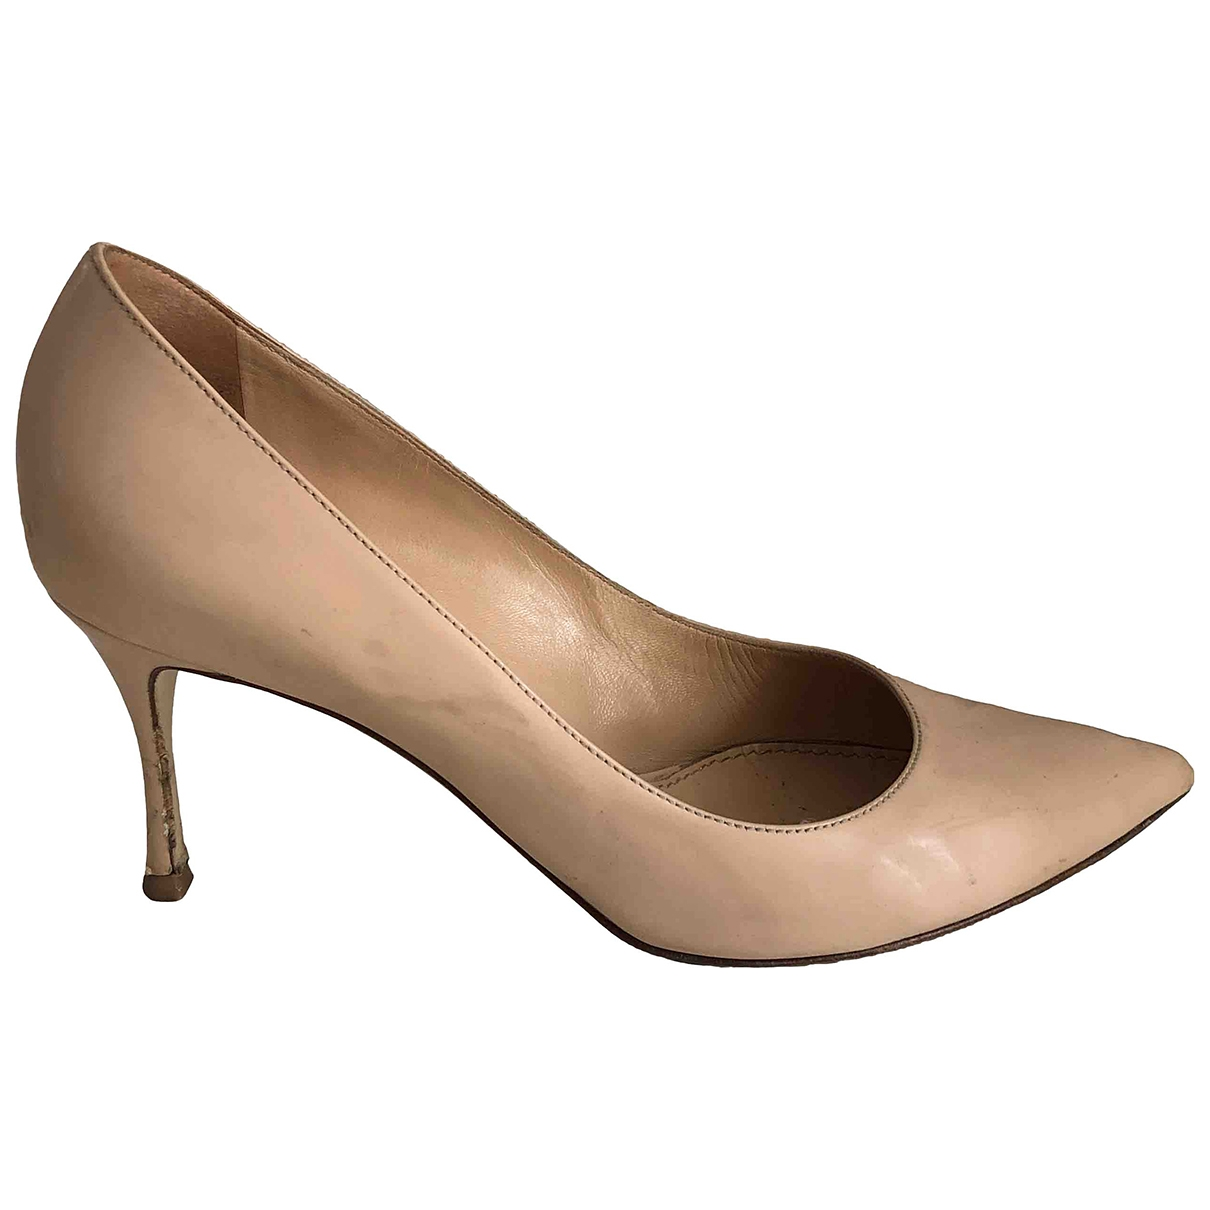 Sergio Rossi \N Pink Patent leather Heels for Women 36.5 IT